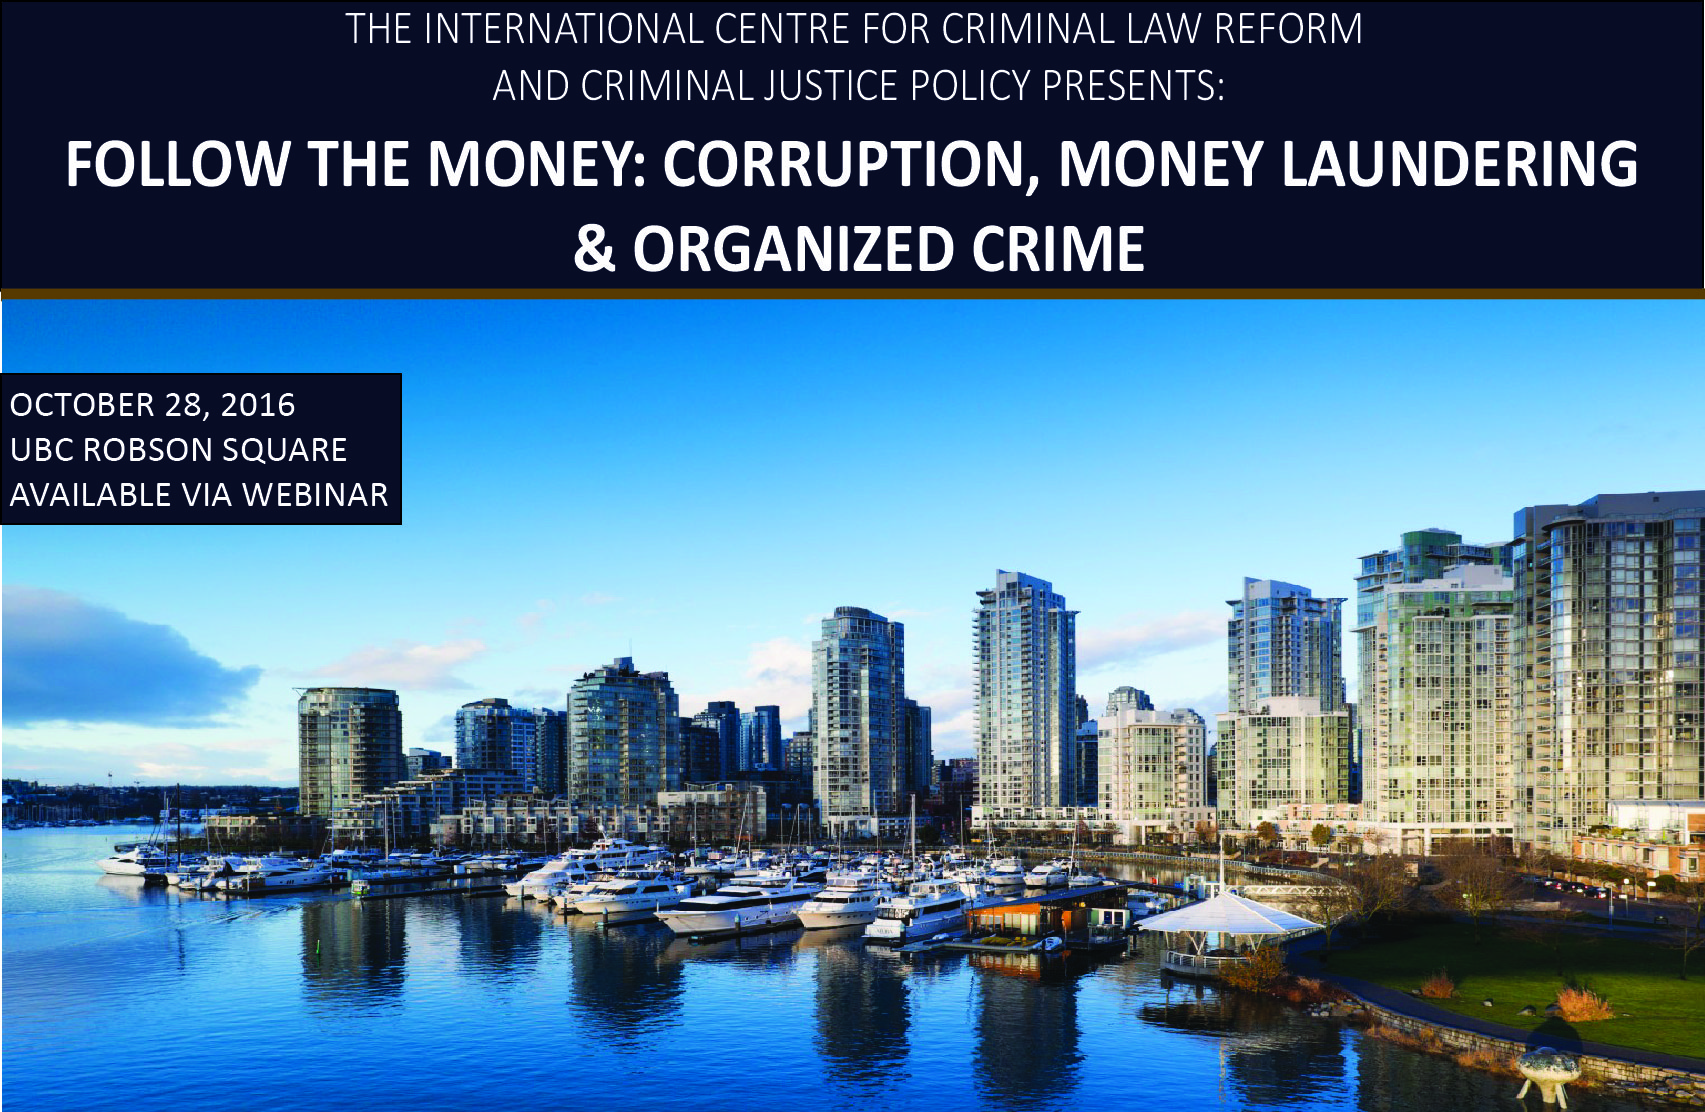 Follow the Money: Corruption, Money Laundering & Organized Crime